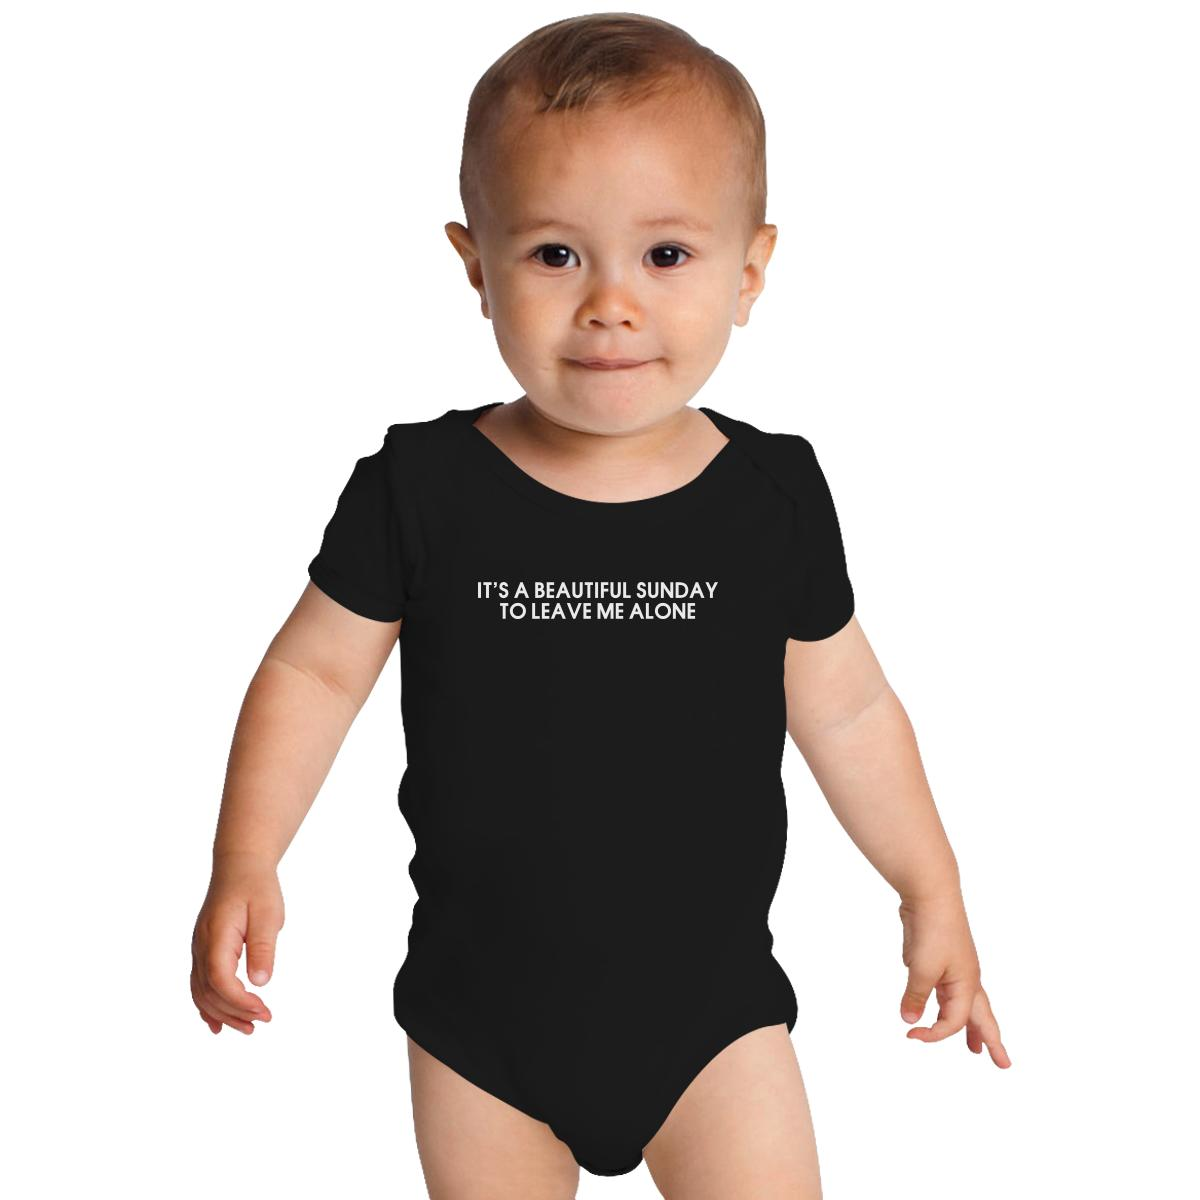 Its A Beautiful Sunday To Leave Me Alone Baby Onesies Customoncom